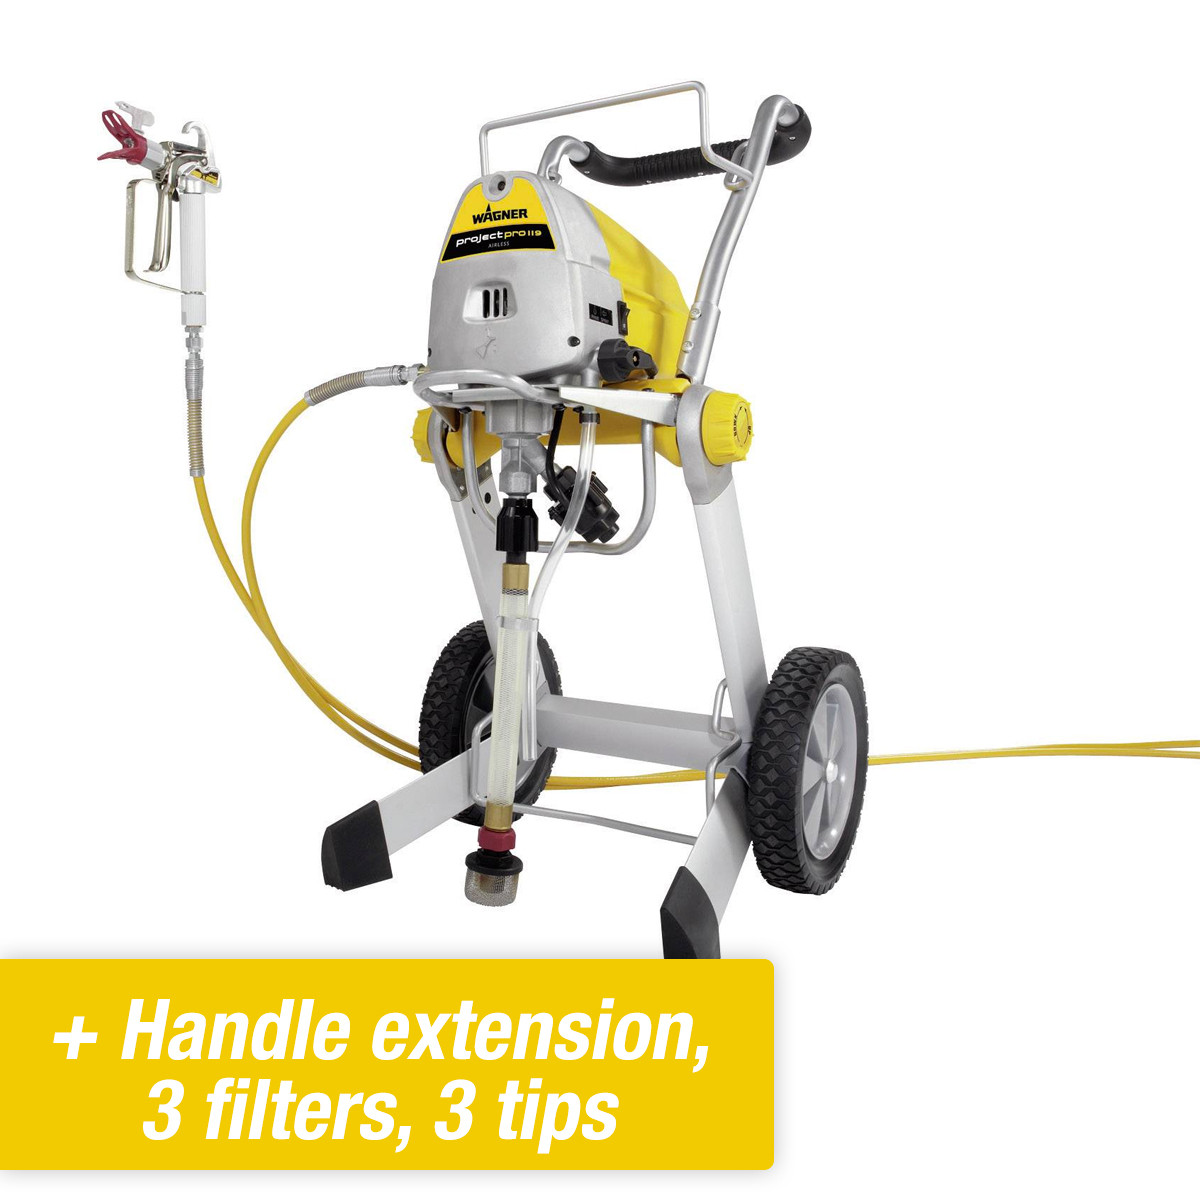 Wagner Project Pro 119 Airless paint sprayer